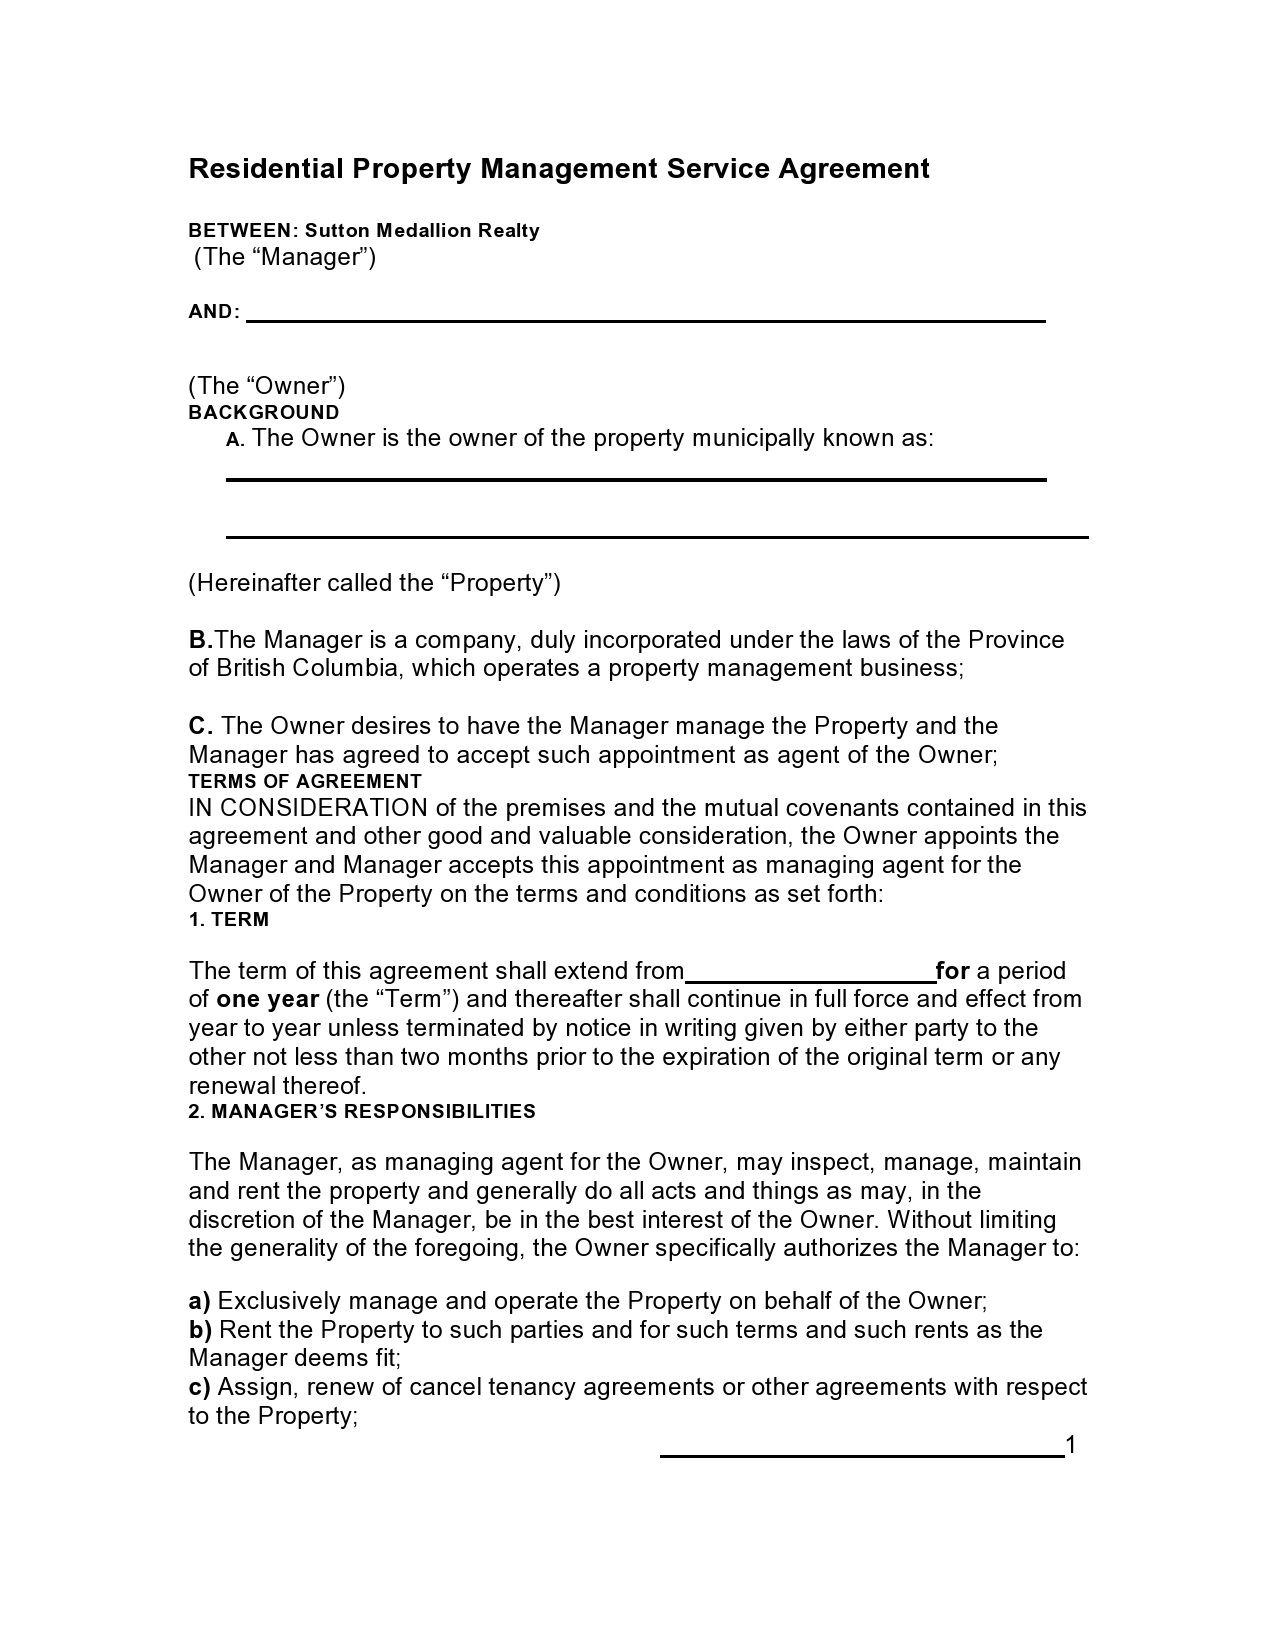 007 Top Property Management Contract Template Uk Sample  Free Agreement CommercialFull